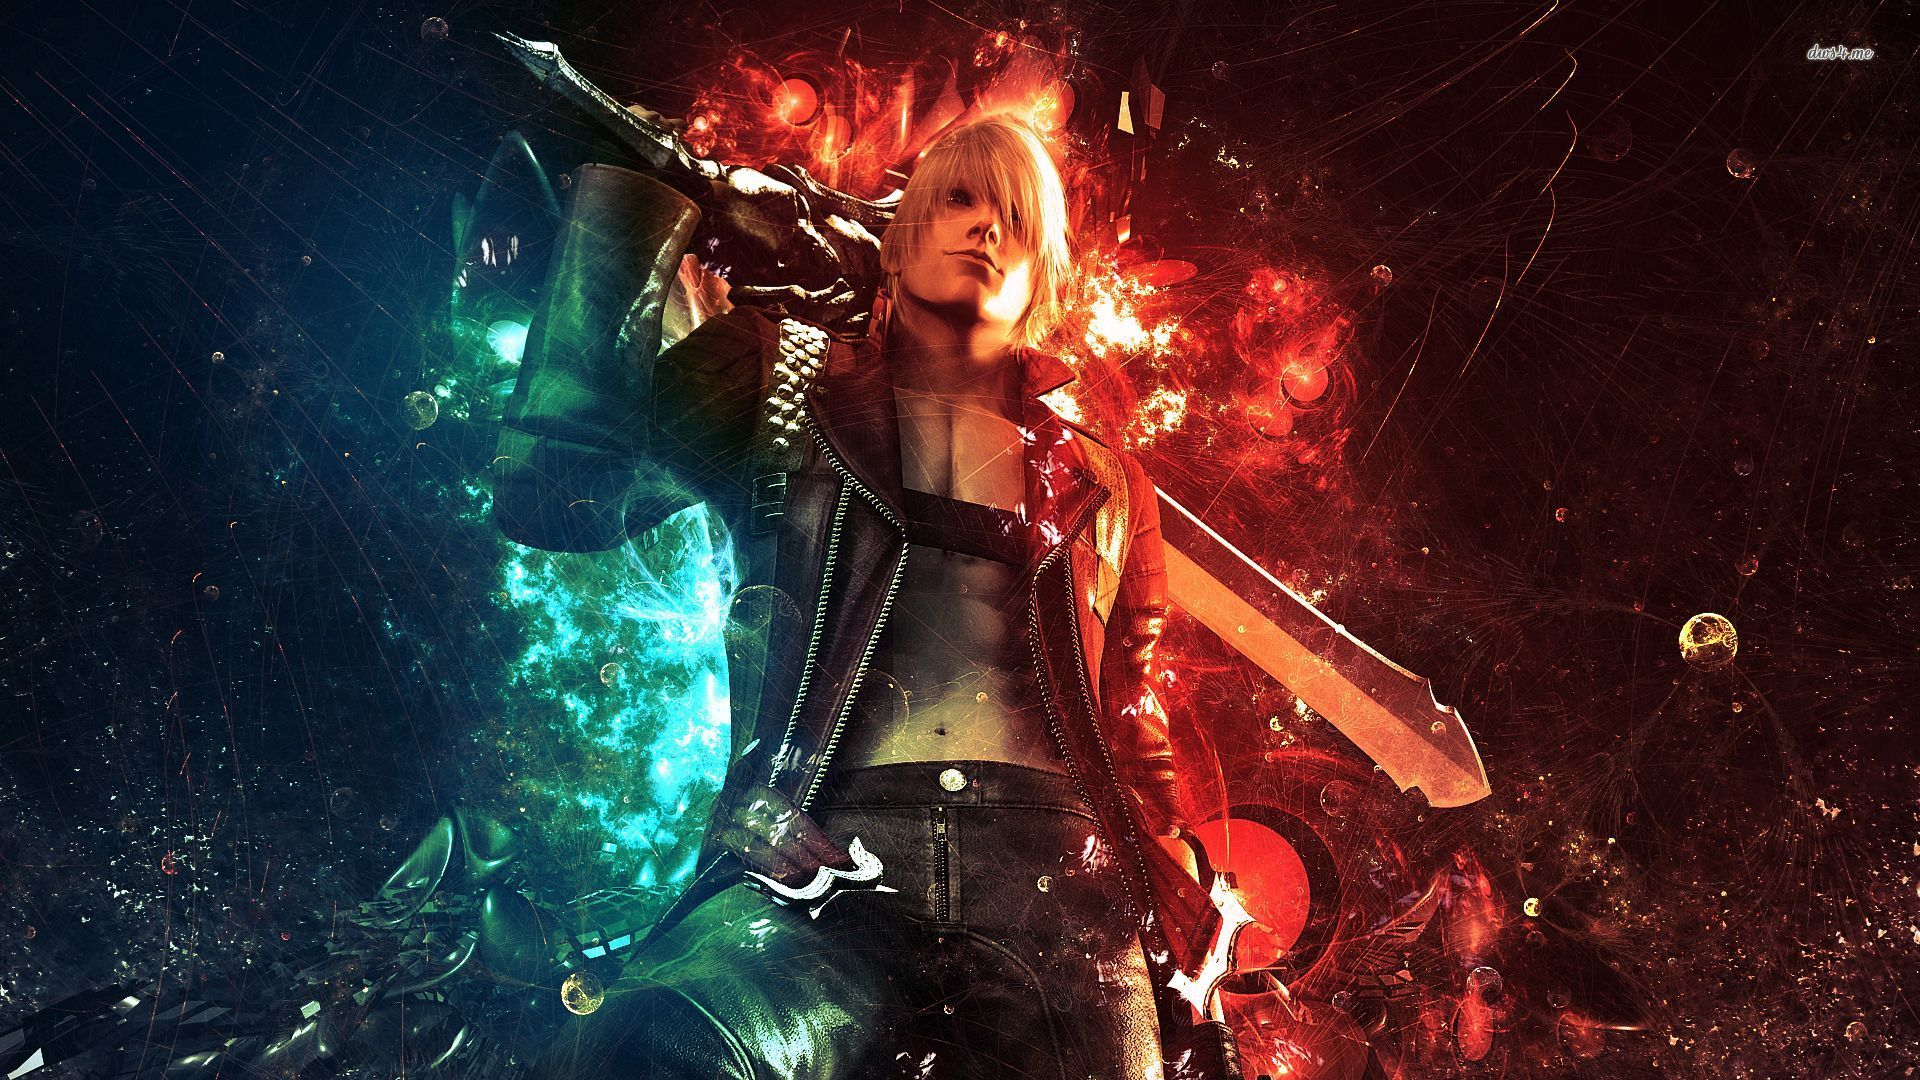 Free Download 6426 Devil May Cry 3 Dante 1920x1080 Game Wallpaper